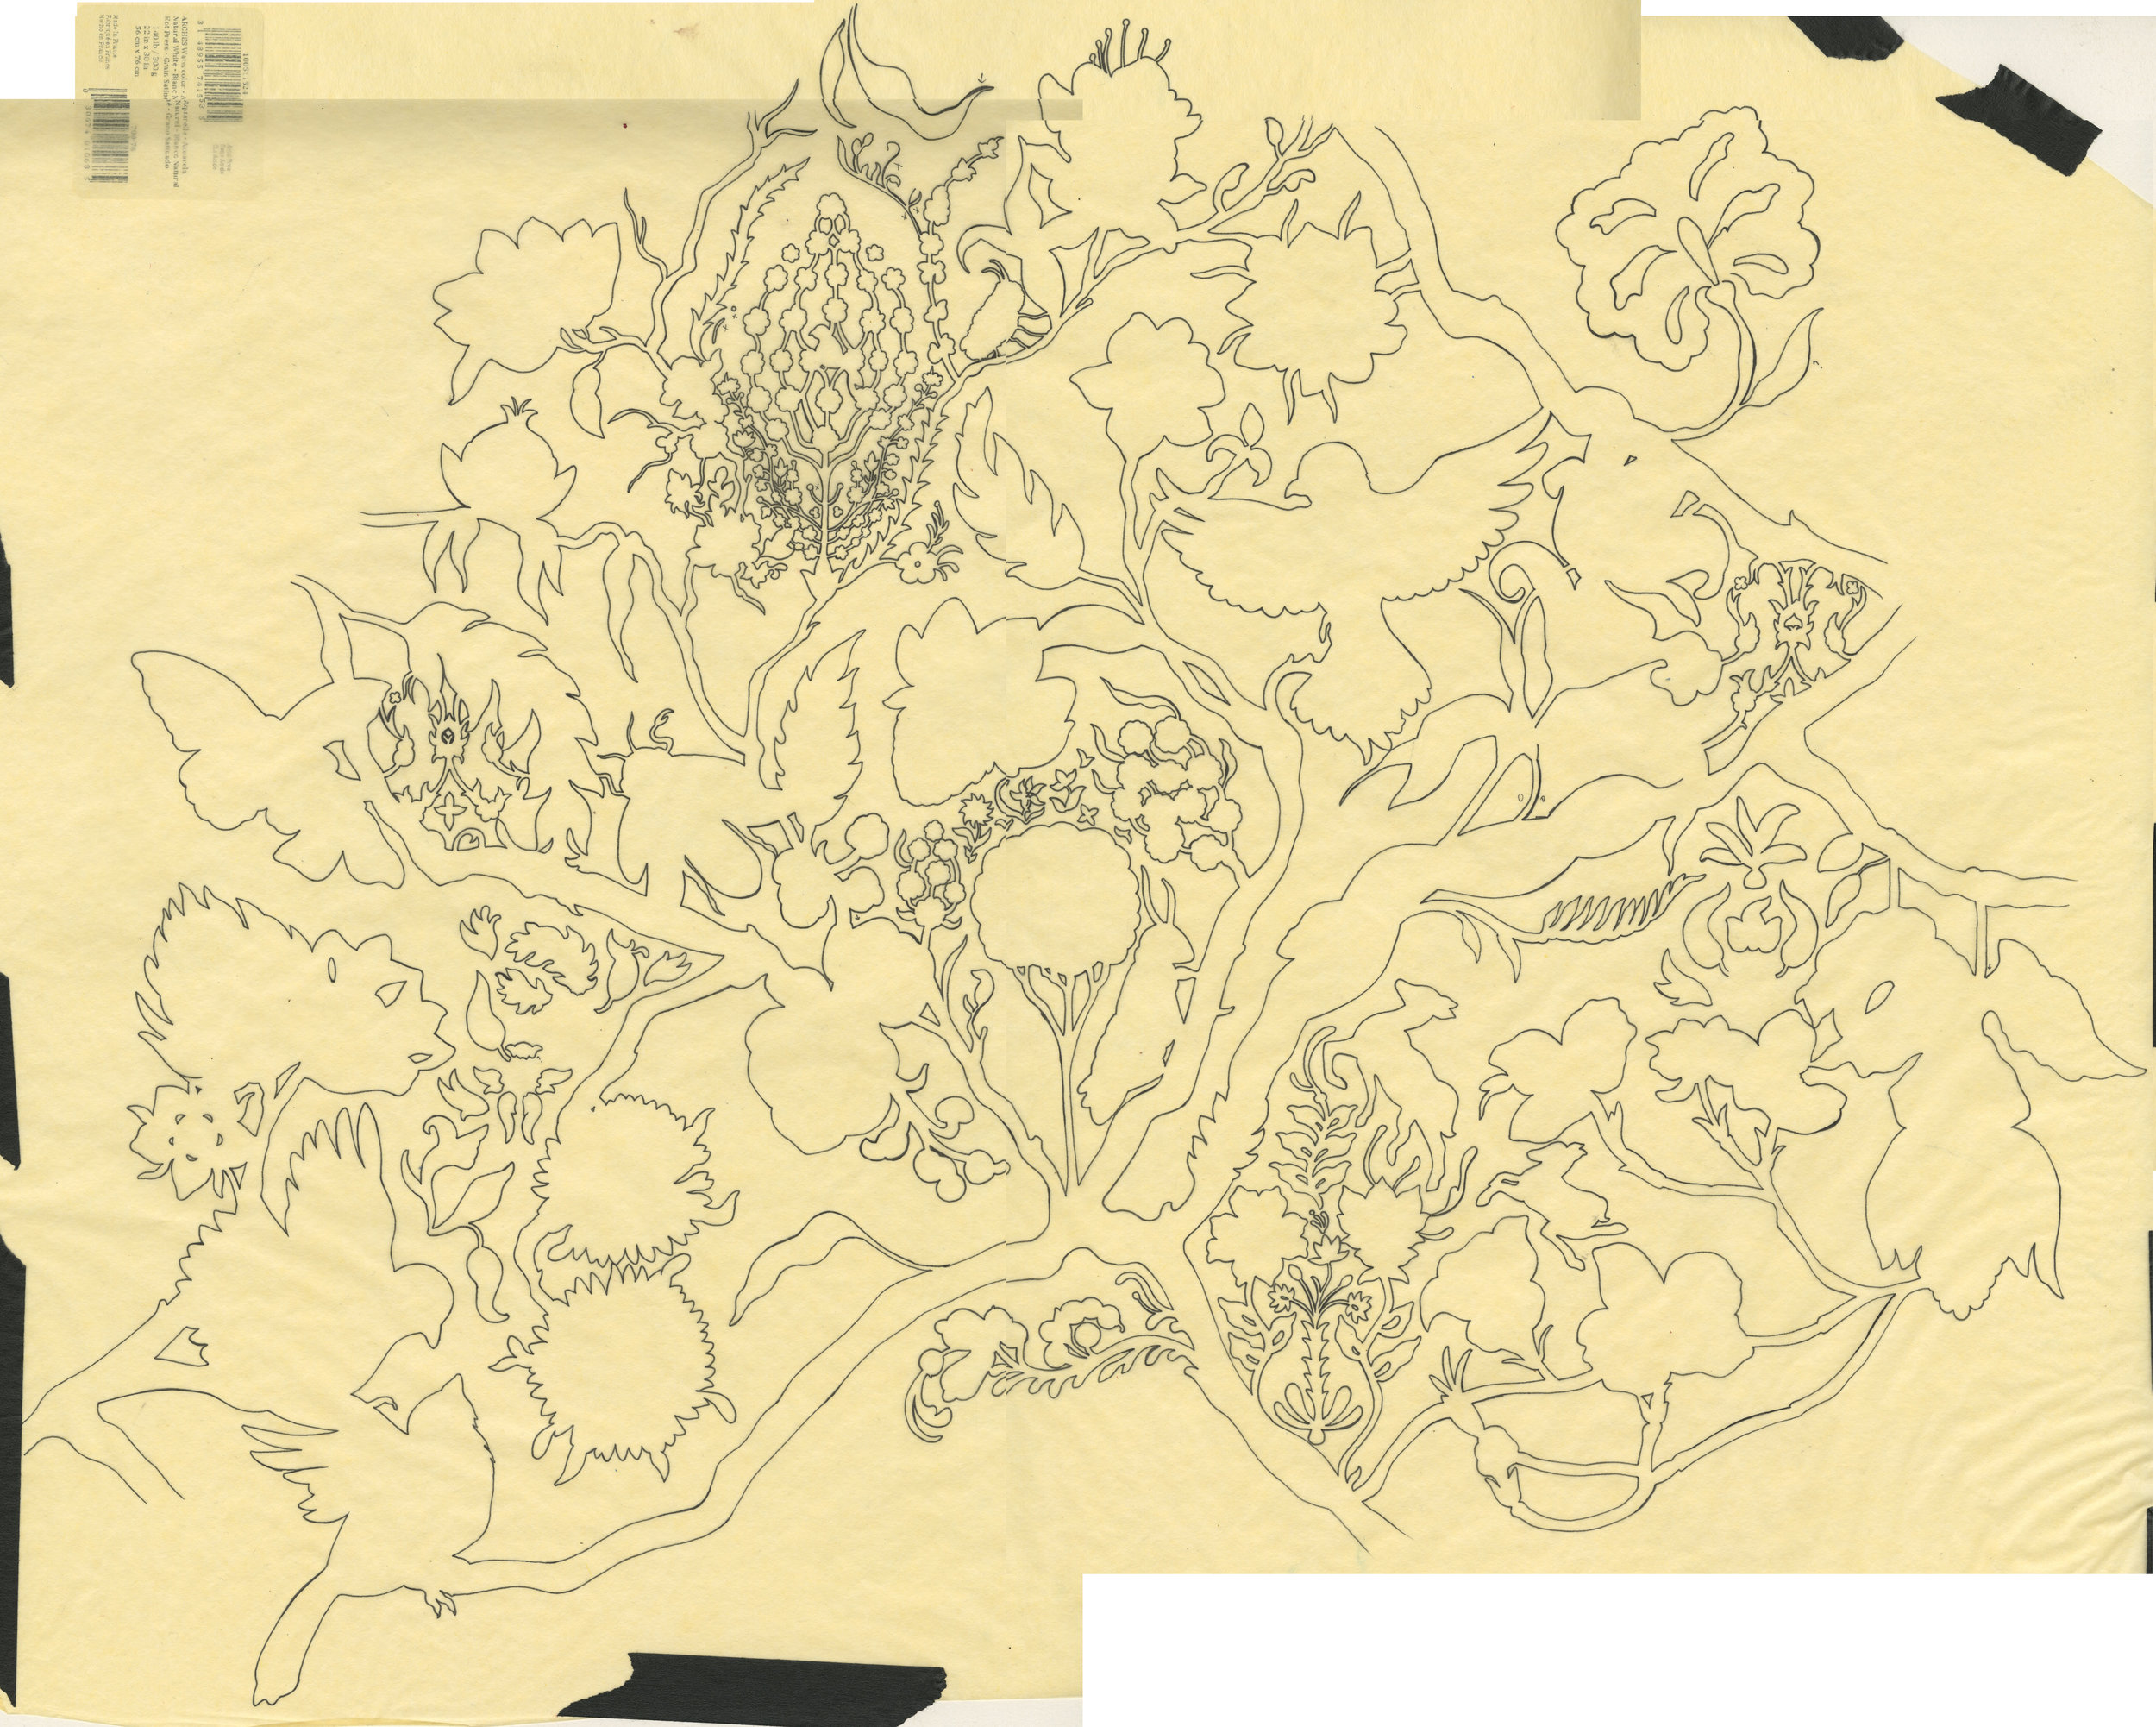 The completed outline tracing, in the process of being merged on Photoshop after having been scanned into the computer in pieces.